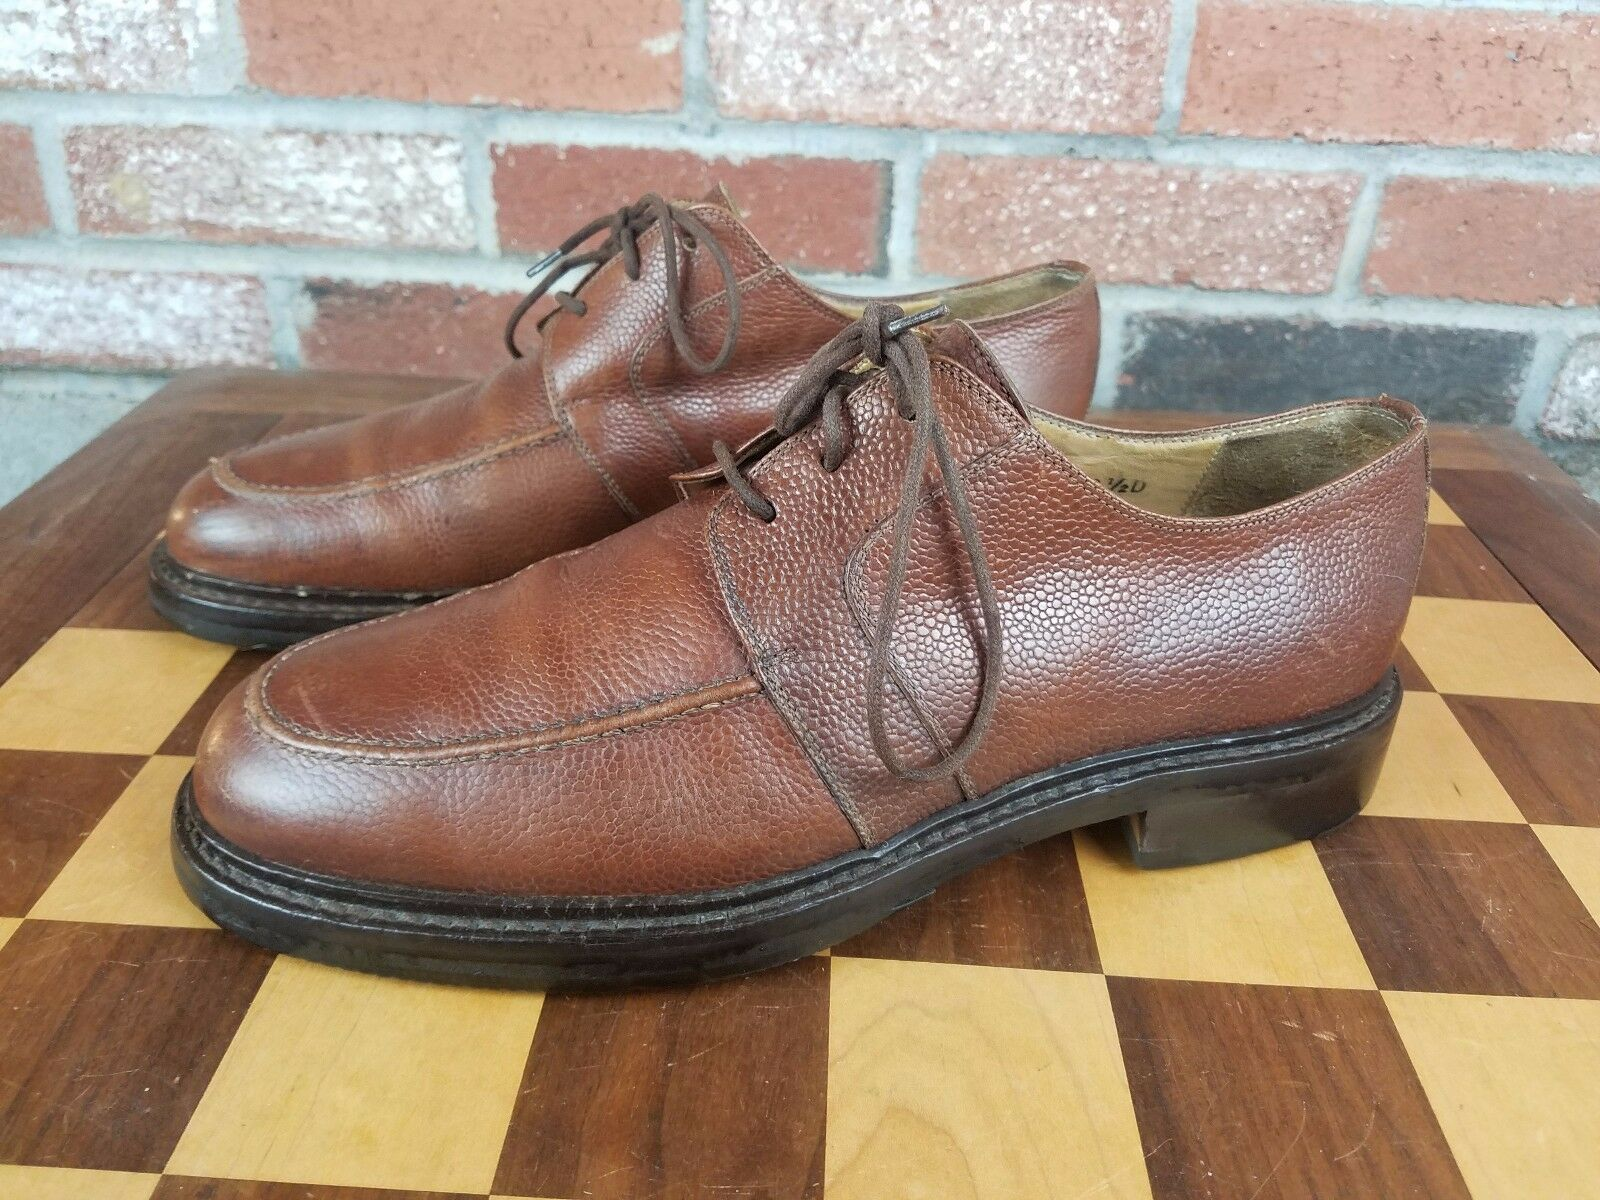 JOSEPH ABBOUD MEN'S TEXTURED BROWN CASUAL/DRESS OXFORD SHOES 8.5D ITALY APRON